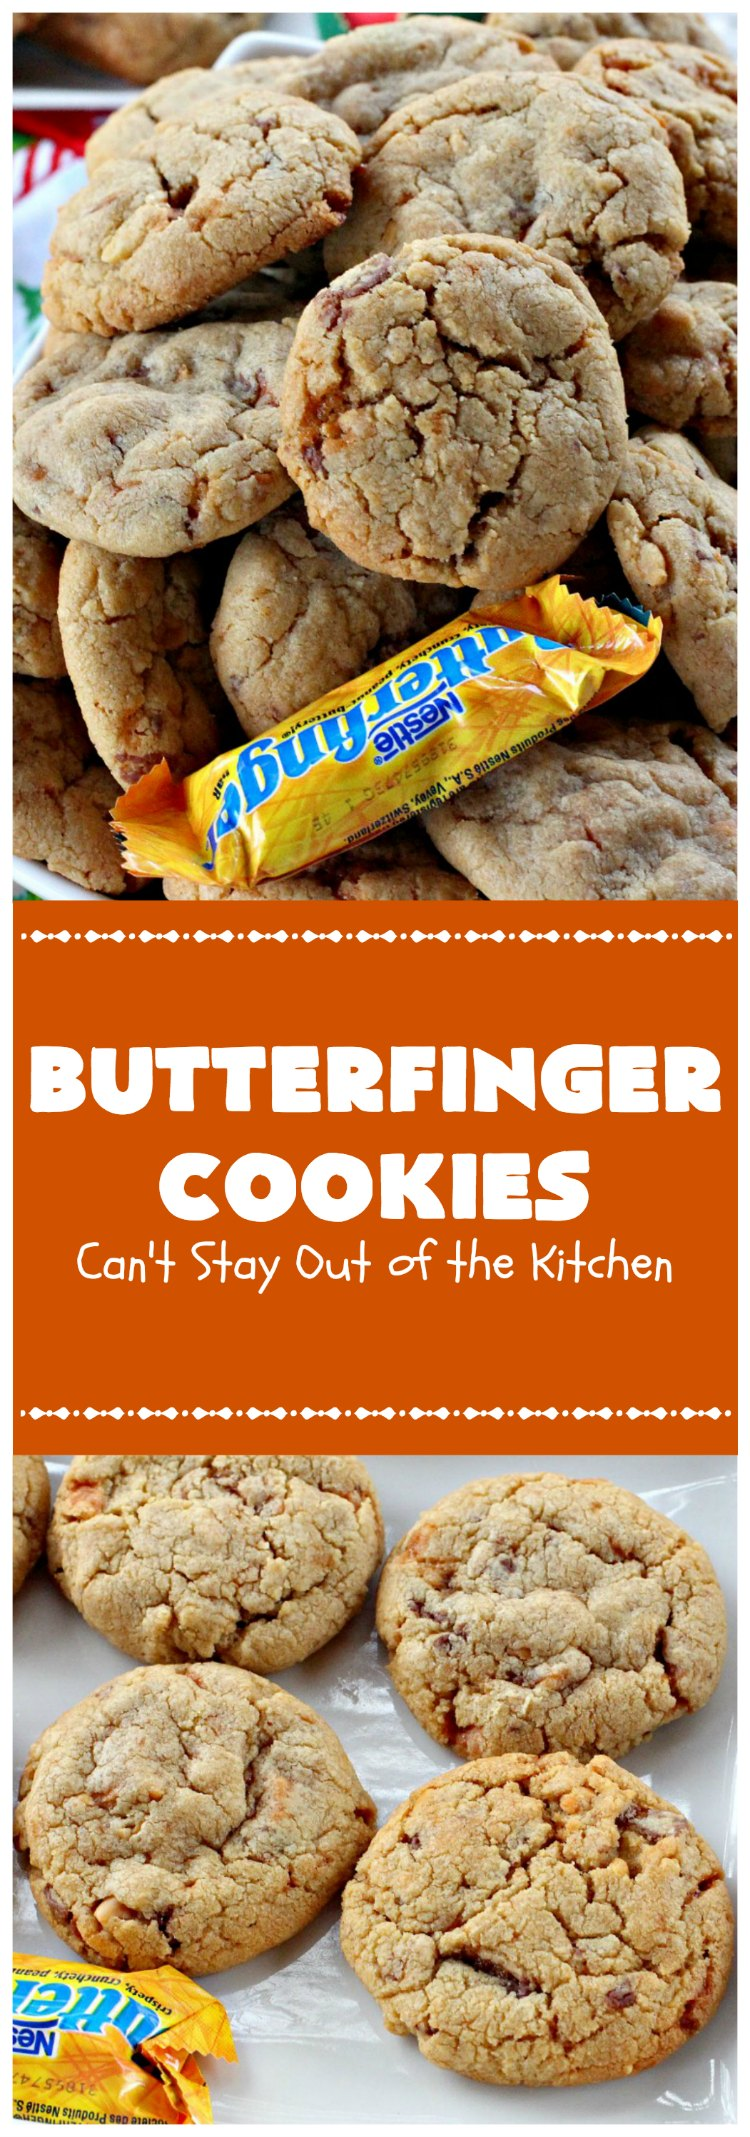 Butterfinger Cookies | Can't Stay Out of the Kitchen